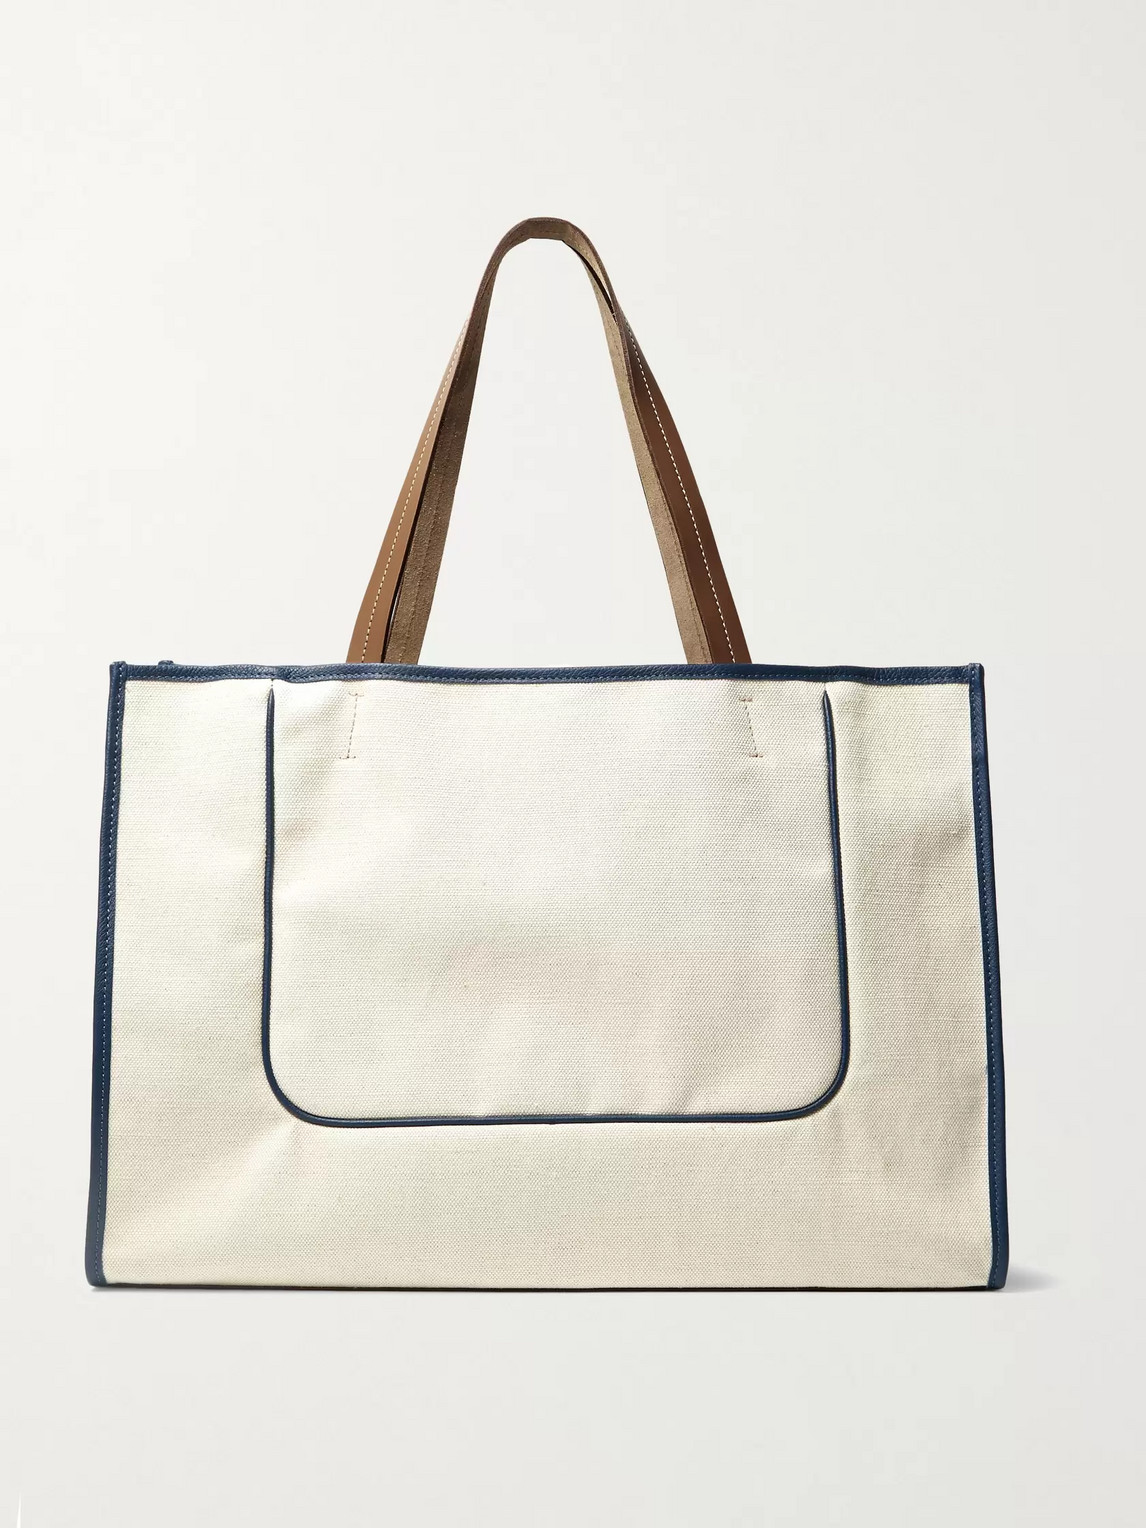 connolly - leather-trimmed canvas tote bag - men - neutrals